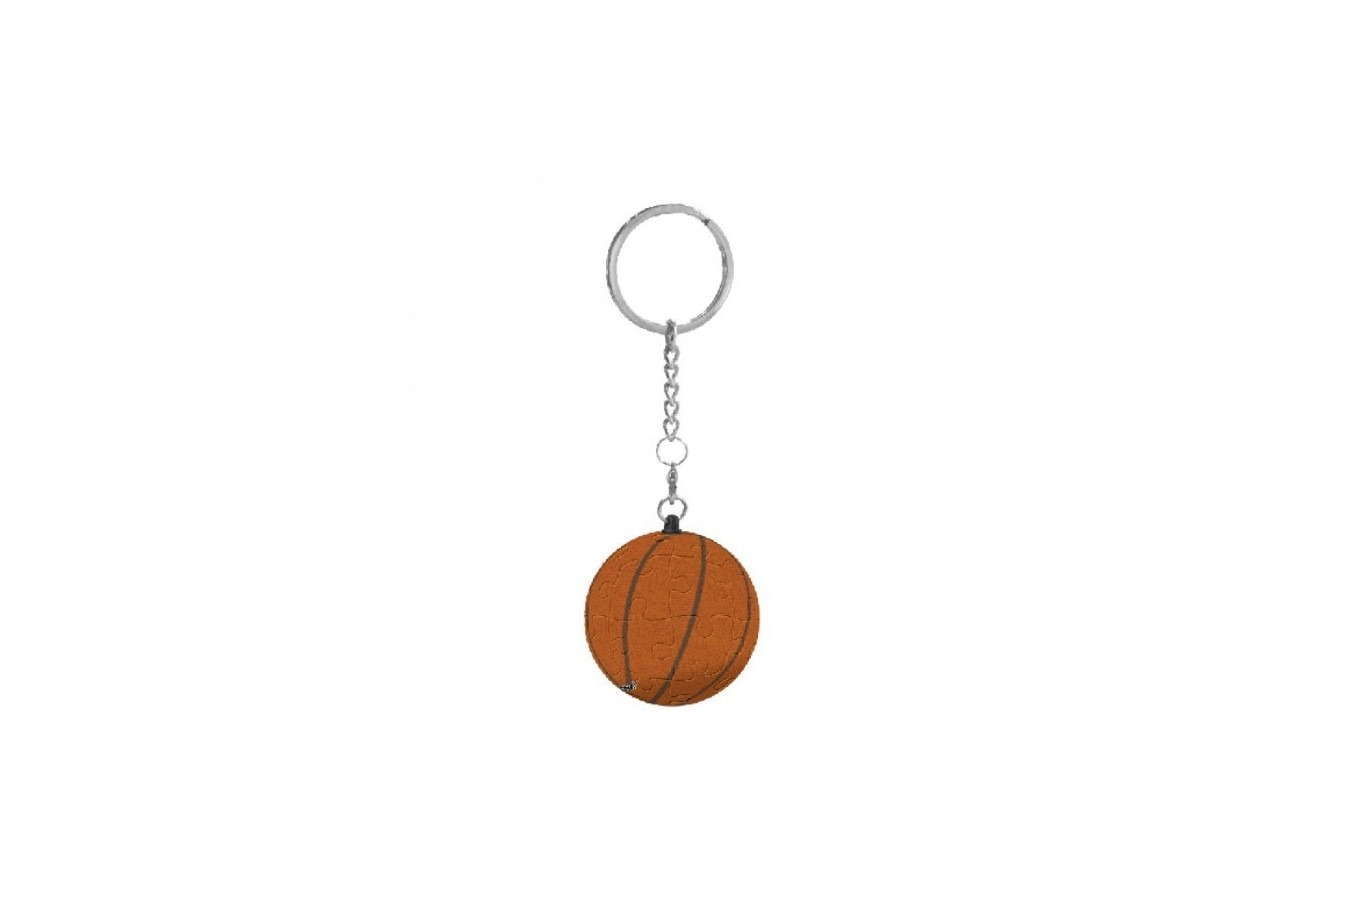 Puzzle 3D Pintoo - Keychain Basket, 24 piese (A1367) imagine